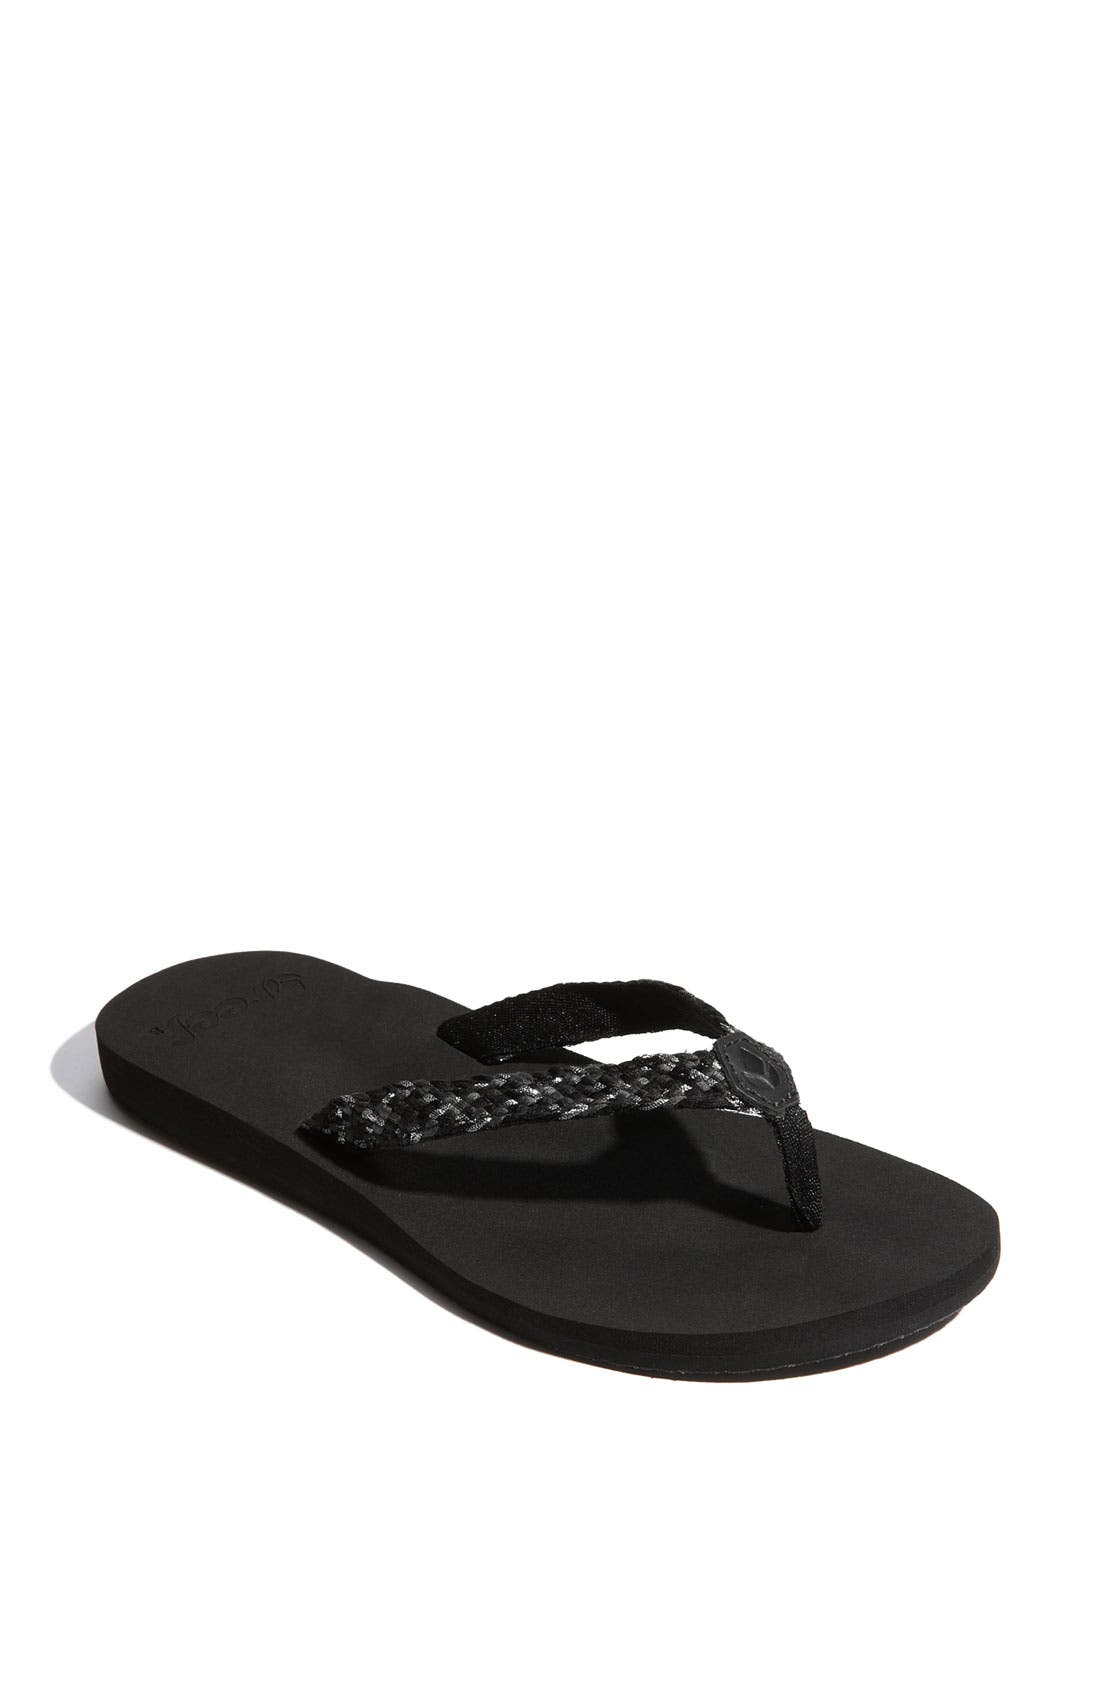 Alternate Image 1 Selected - Reef 'Mallory' Flip Flop